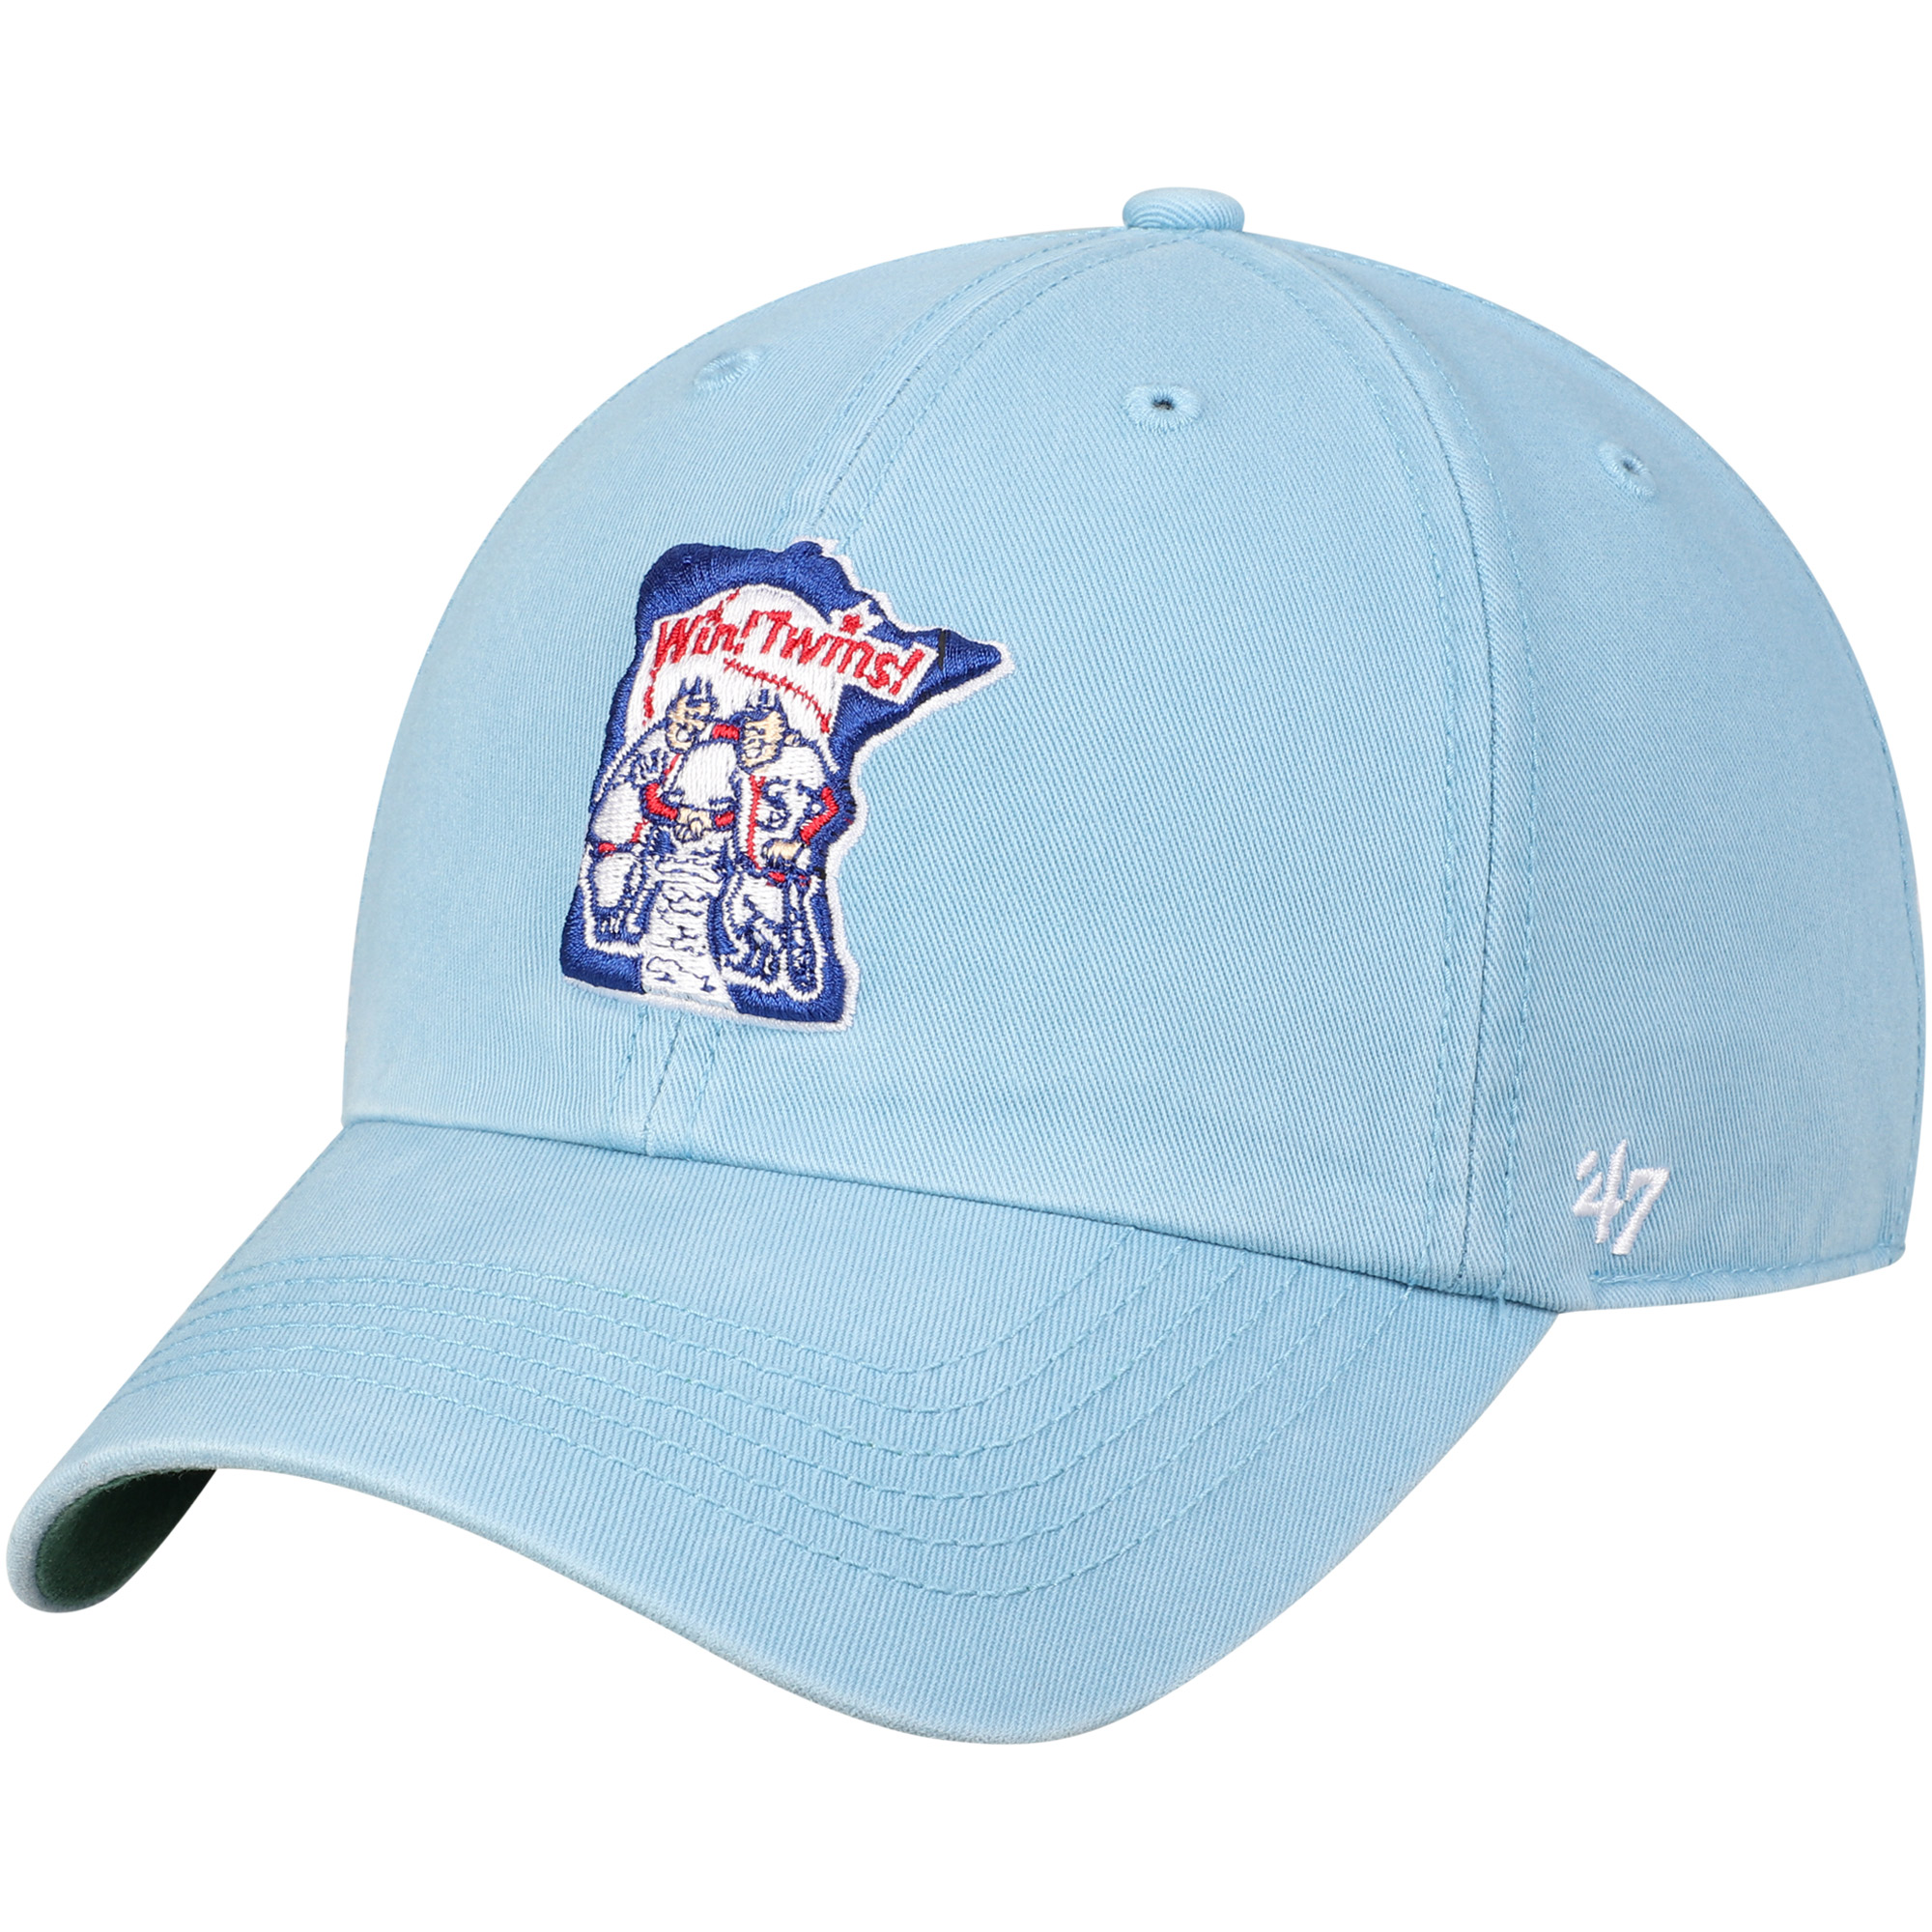 new style 8e075 0791e ... usa minnesota twins 47 1976 franchise cooperstown fitted hat light blue  walmart d0146 68ef8 ...